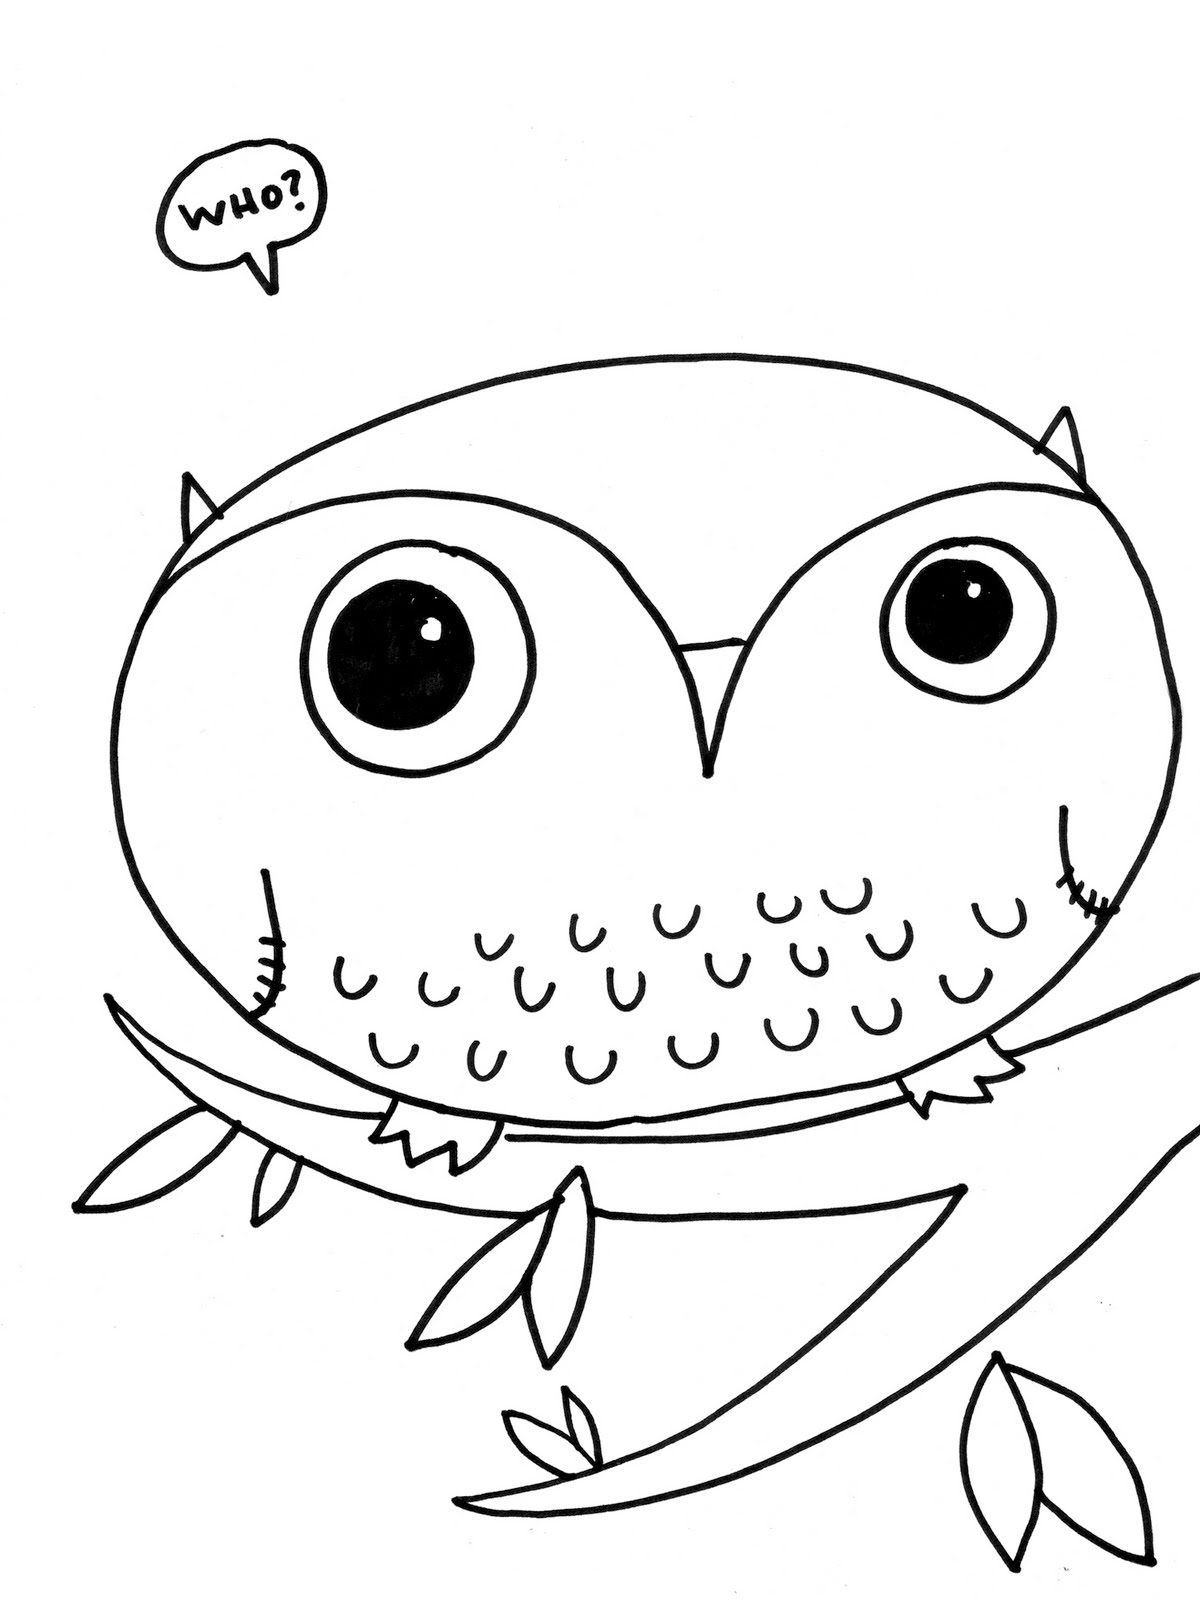 owl coloring pages free - Coloring Printouts